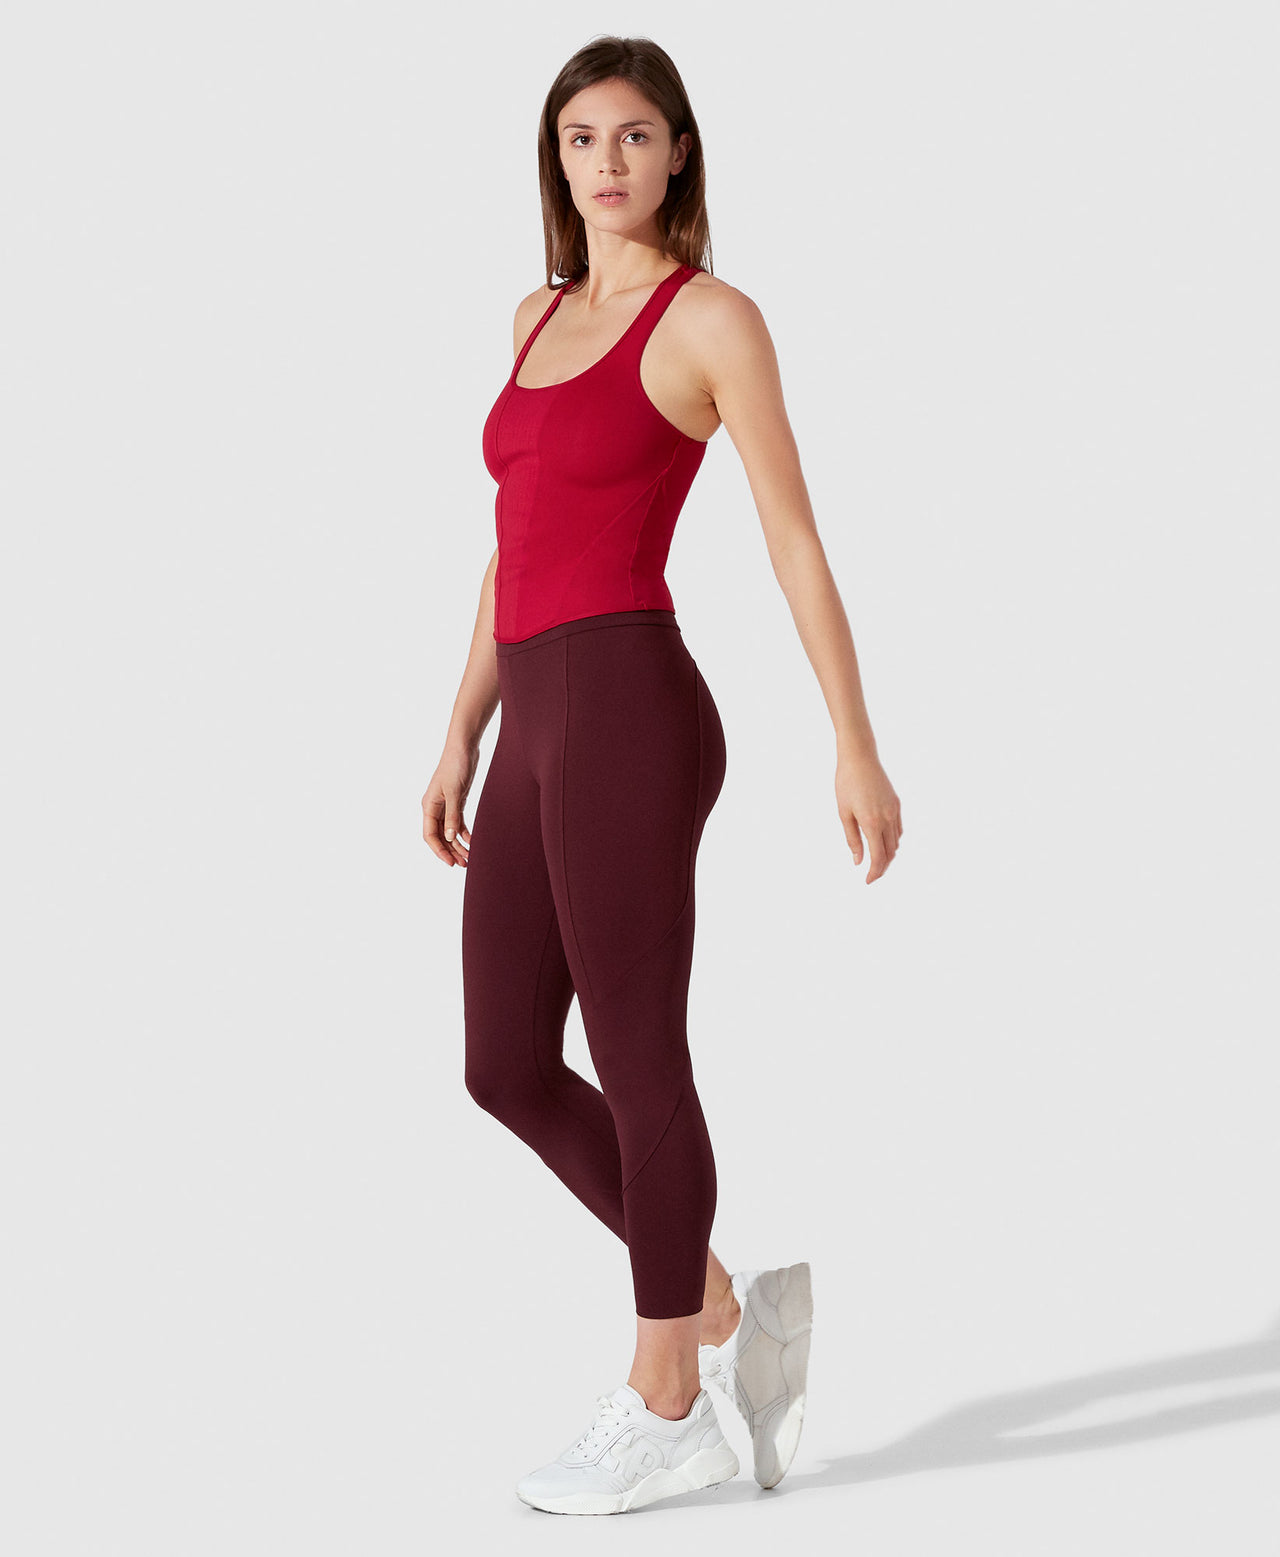 high end workout wear